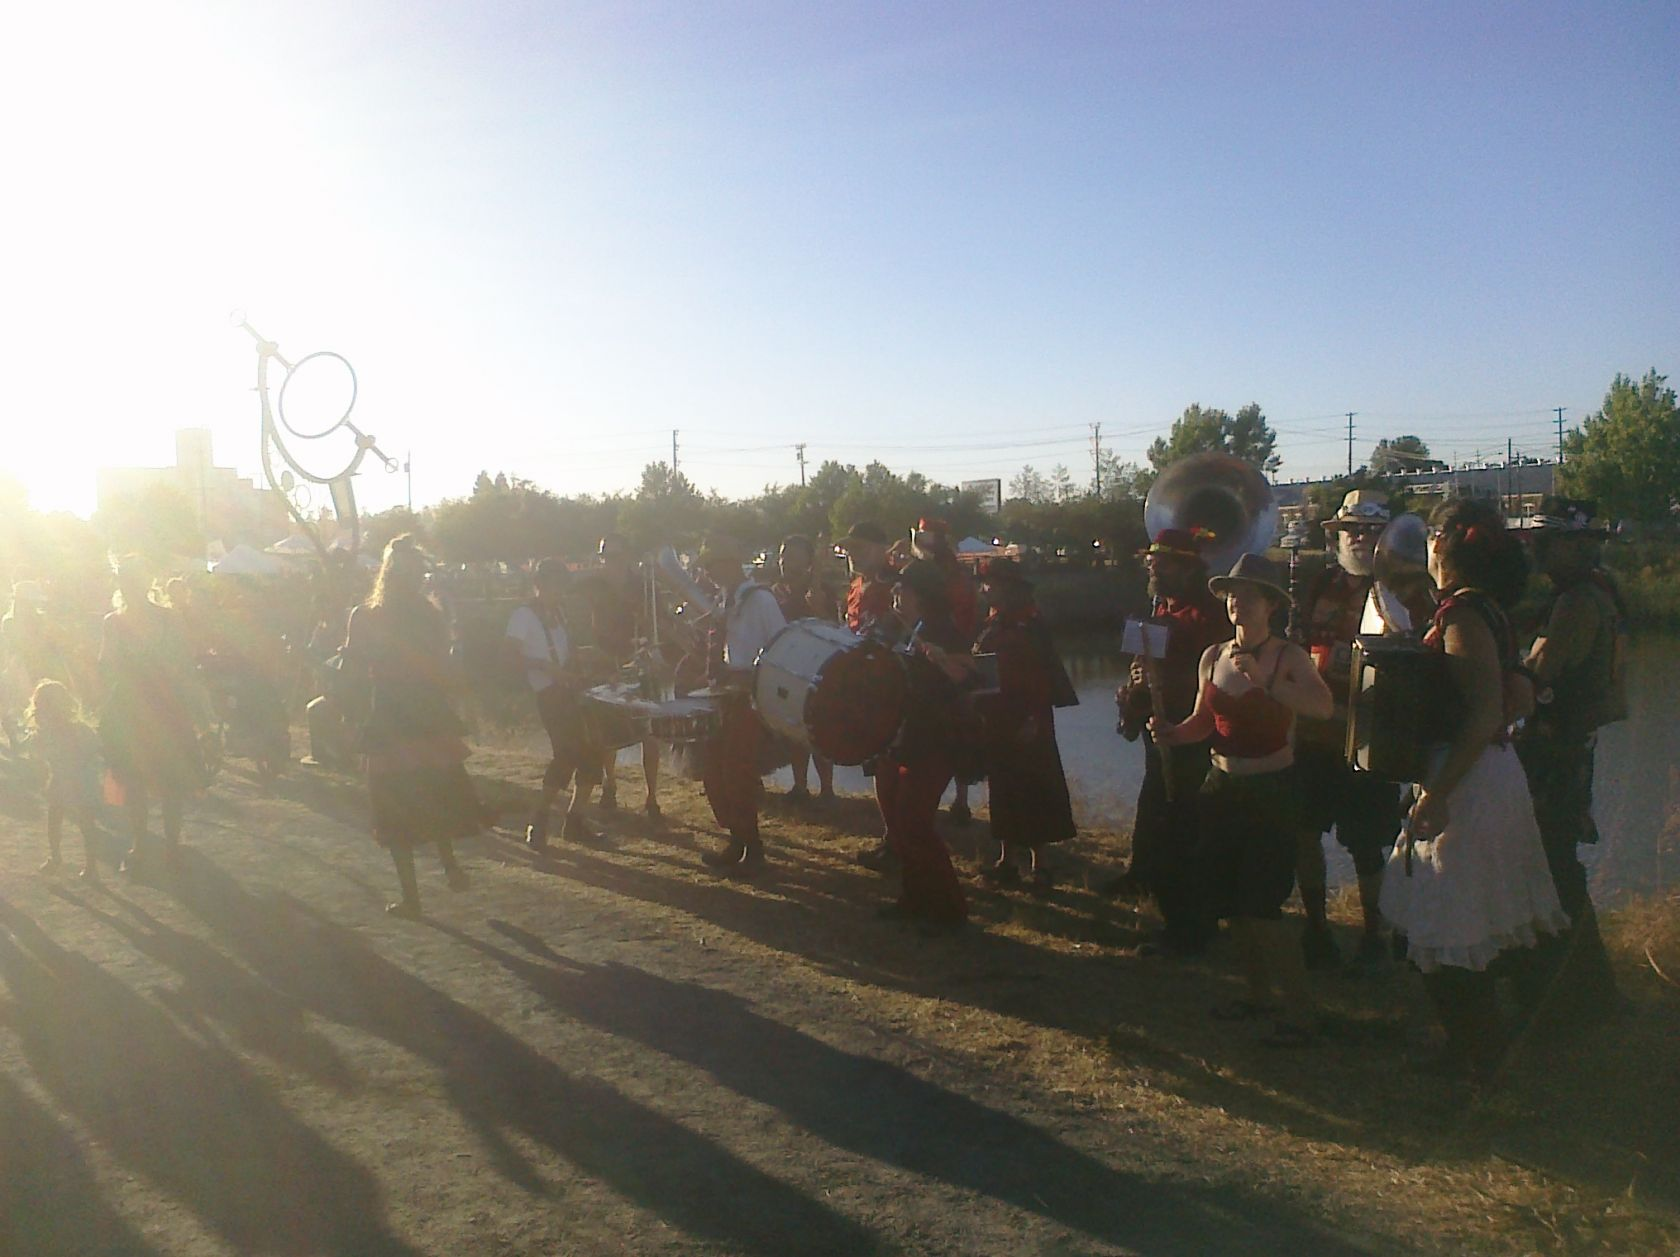 HubBub Club leads the sunset parade out of the Petaluma Rivertown Revival 2012. Photo by Summer Burkes